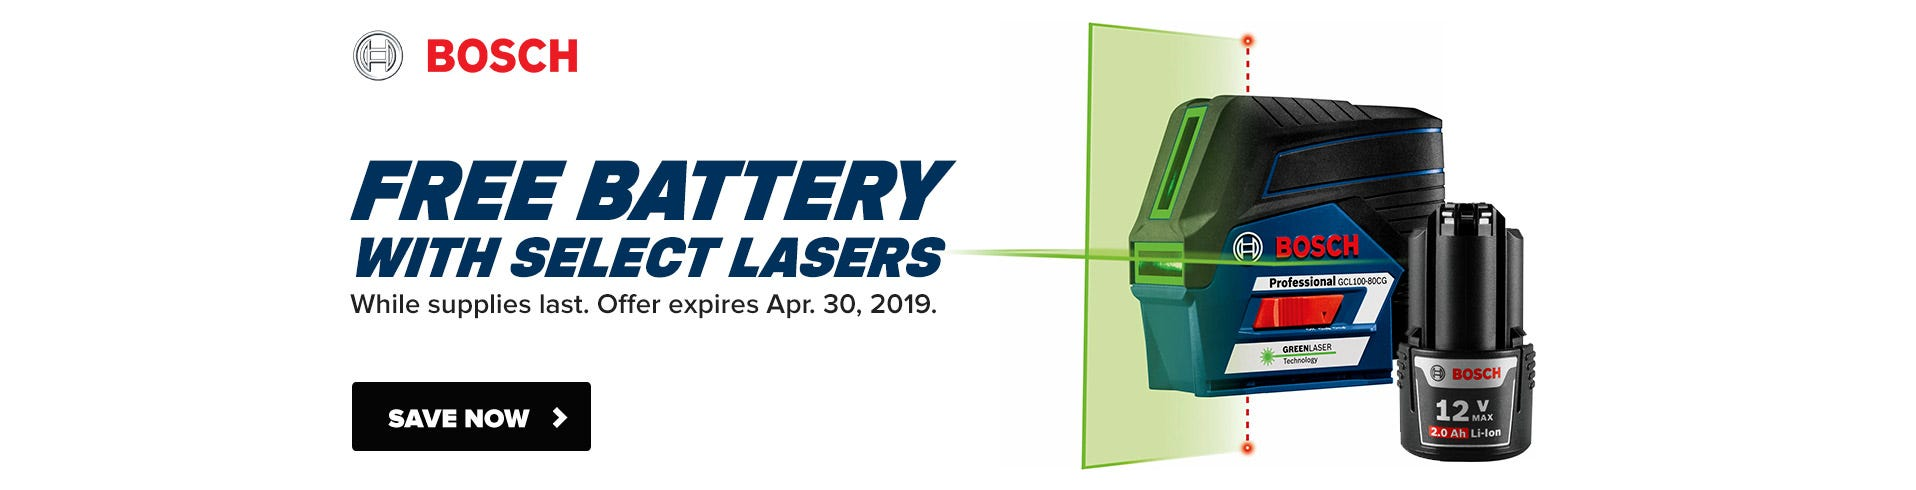 Free Battery with Bosch Laser Levels